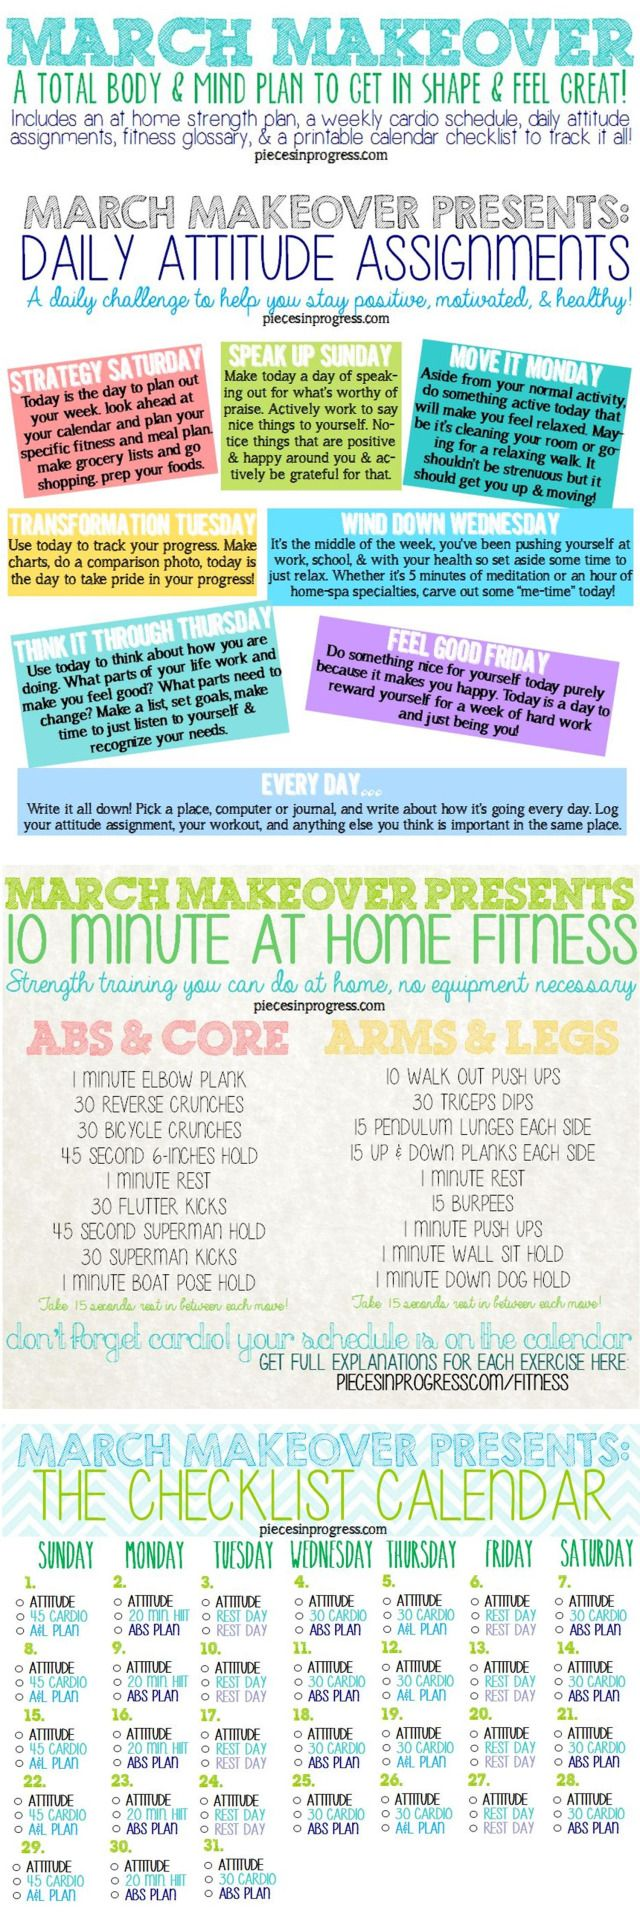 How to make a fitness plan at home pieces in progress living fit healthy happy photo exercise malvernweather Images